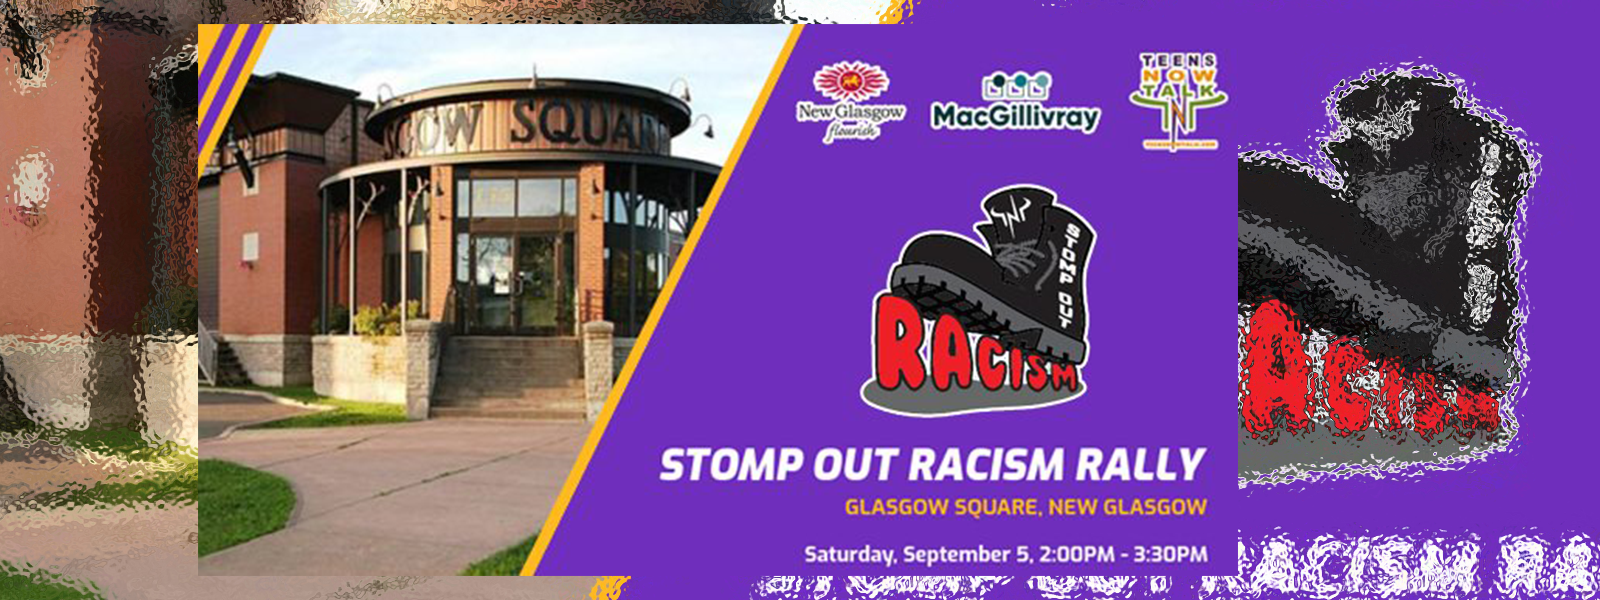 Teens Now Talk presents Stomp Out Racism Rally in New Glasgow Sept 5, 2020 2-3:30 Glasgow Square.